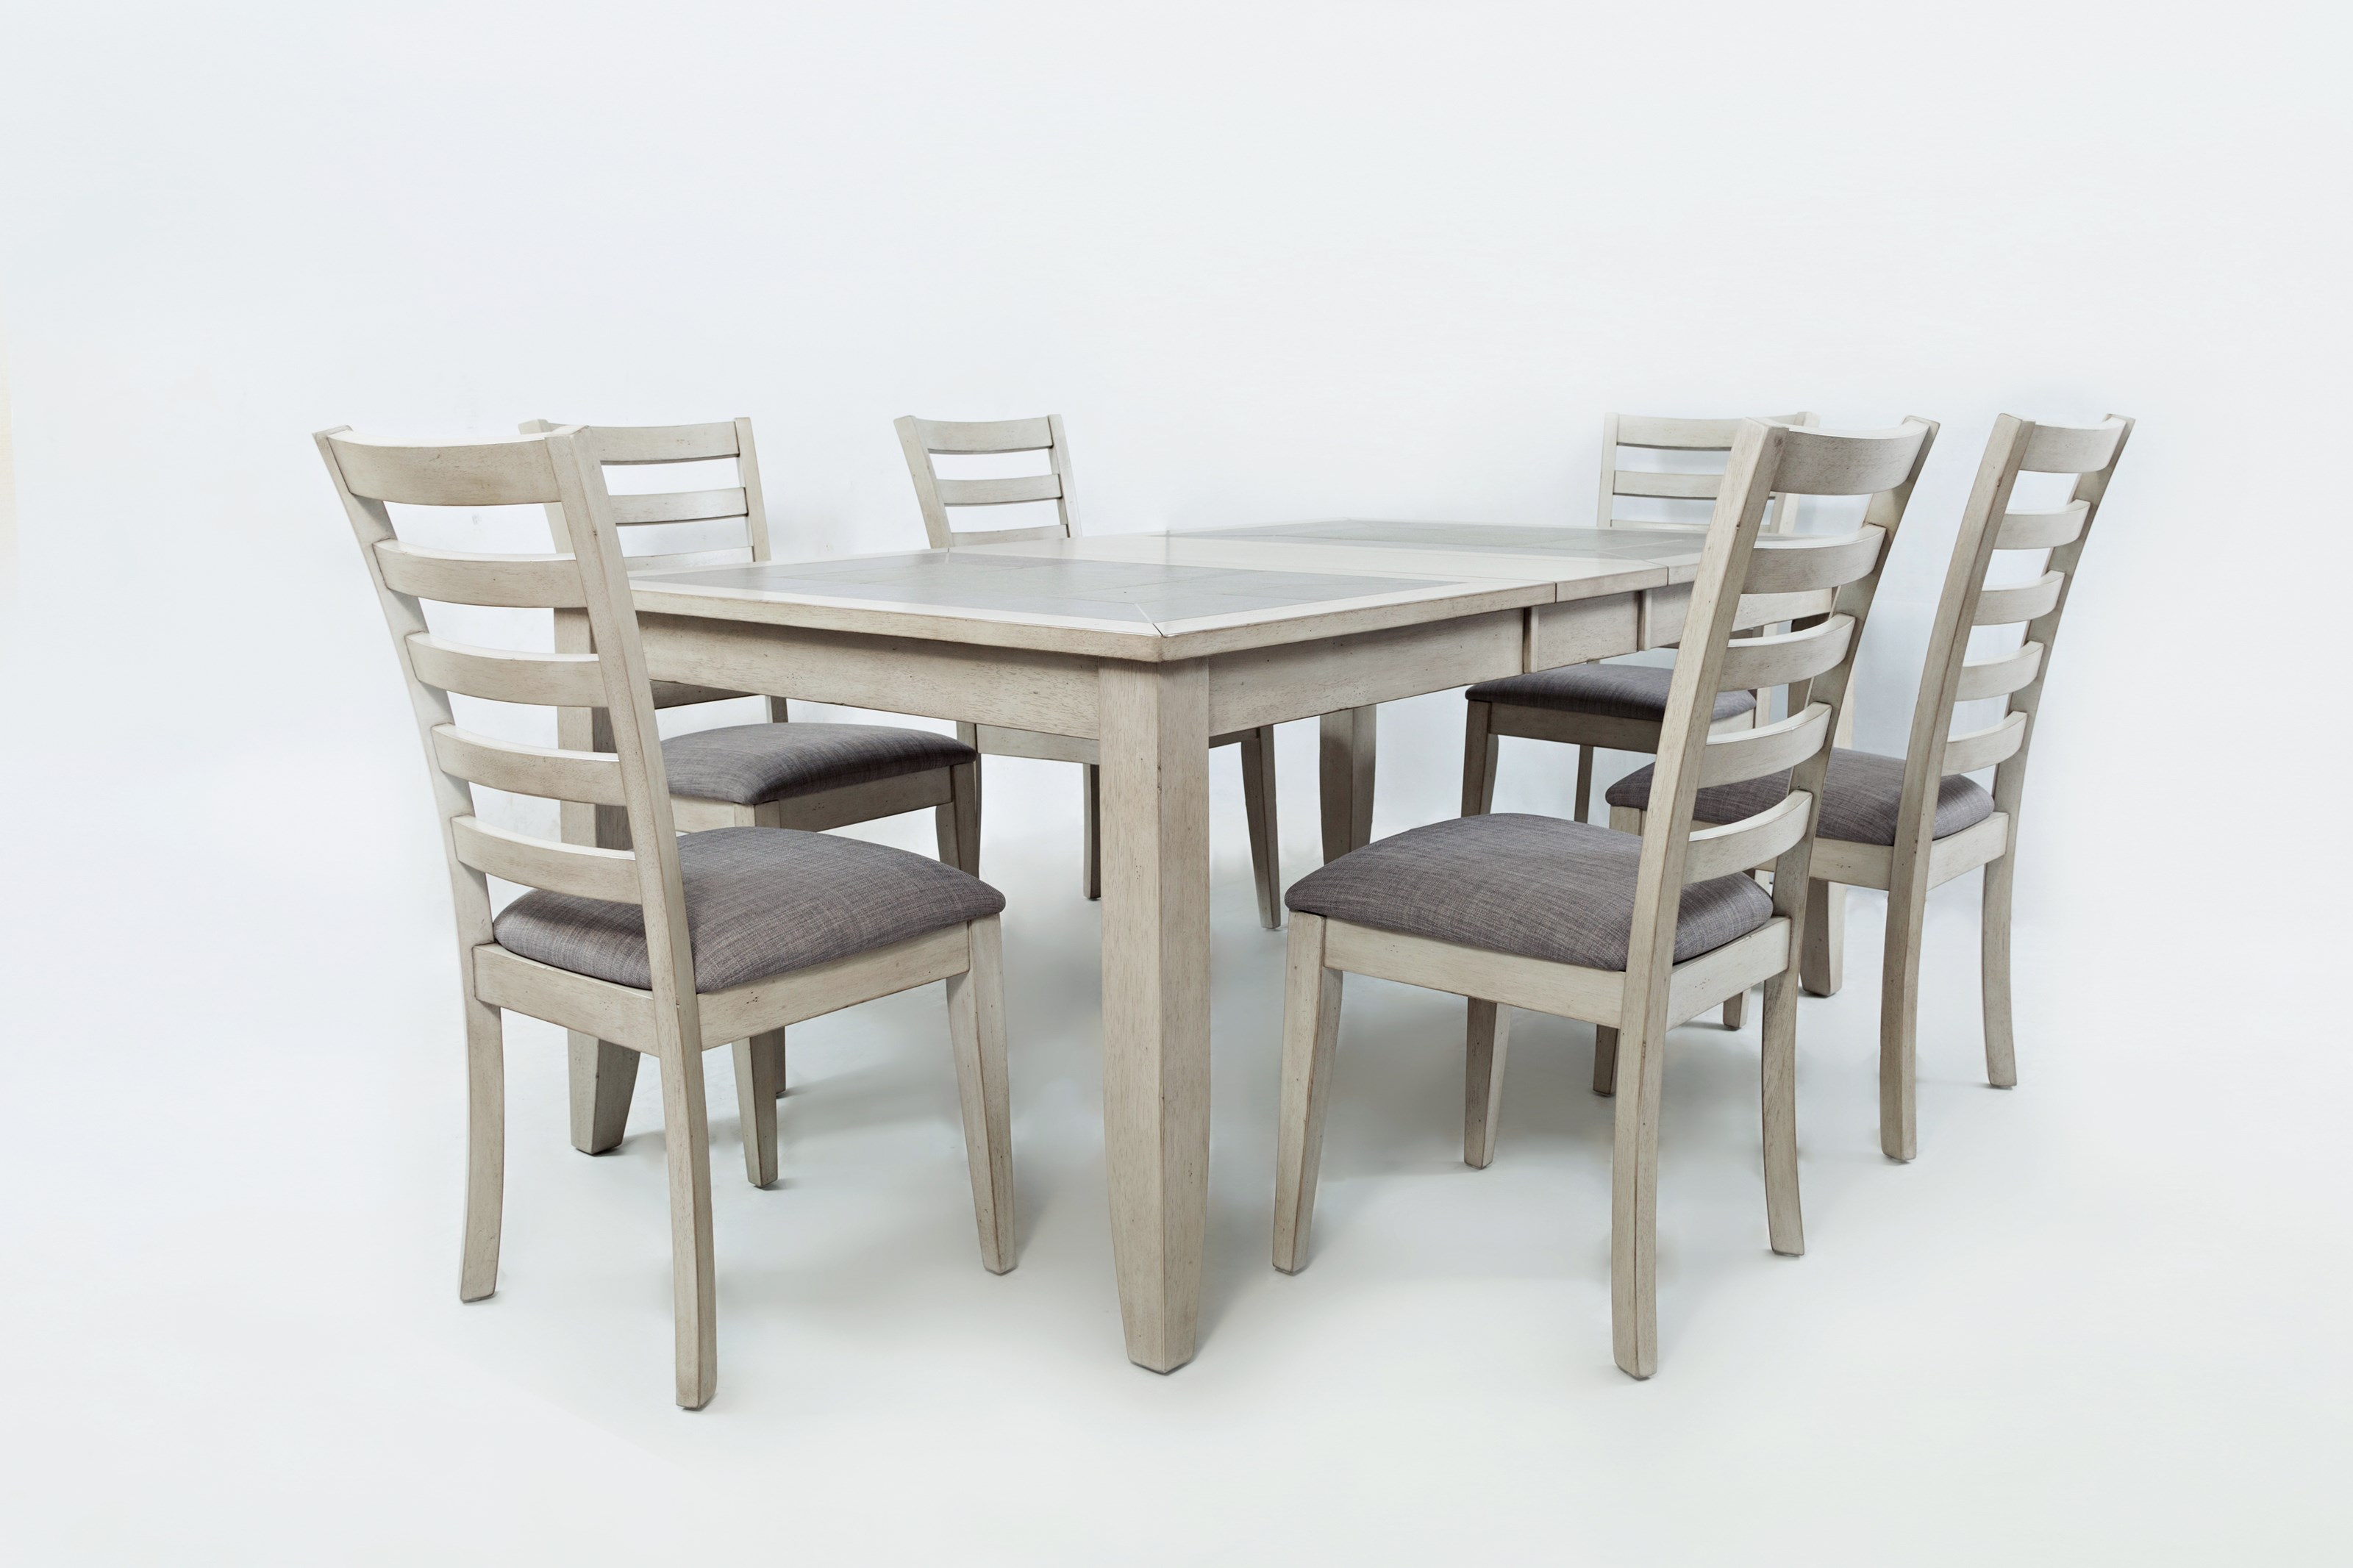 Sarasota Springs Tiled Extension Dining Table and Chair Set by Jofran at Sparks HomeStore